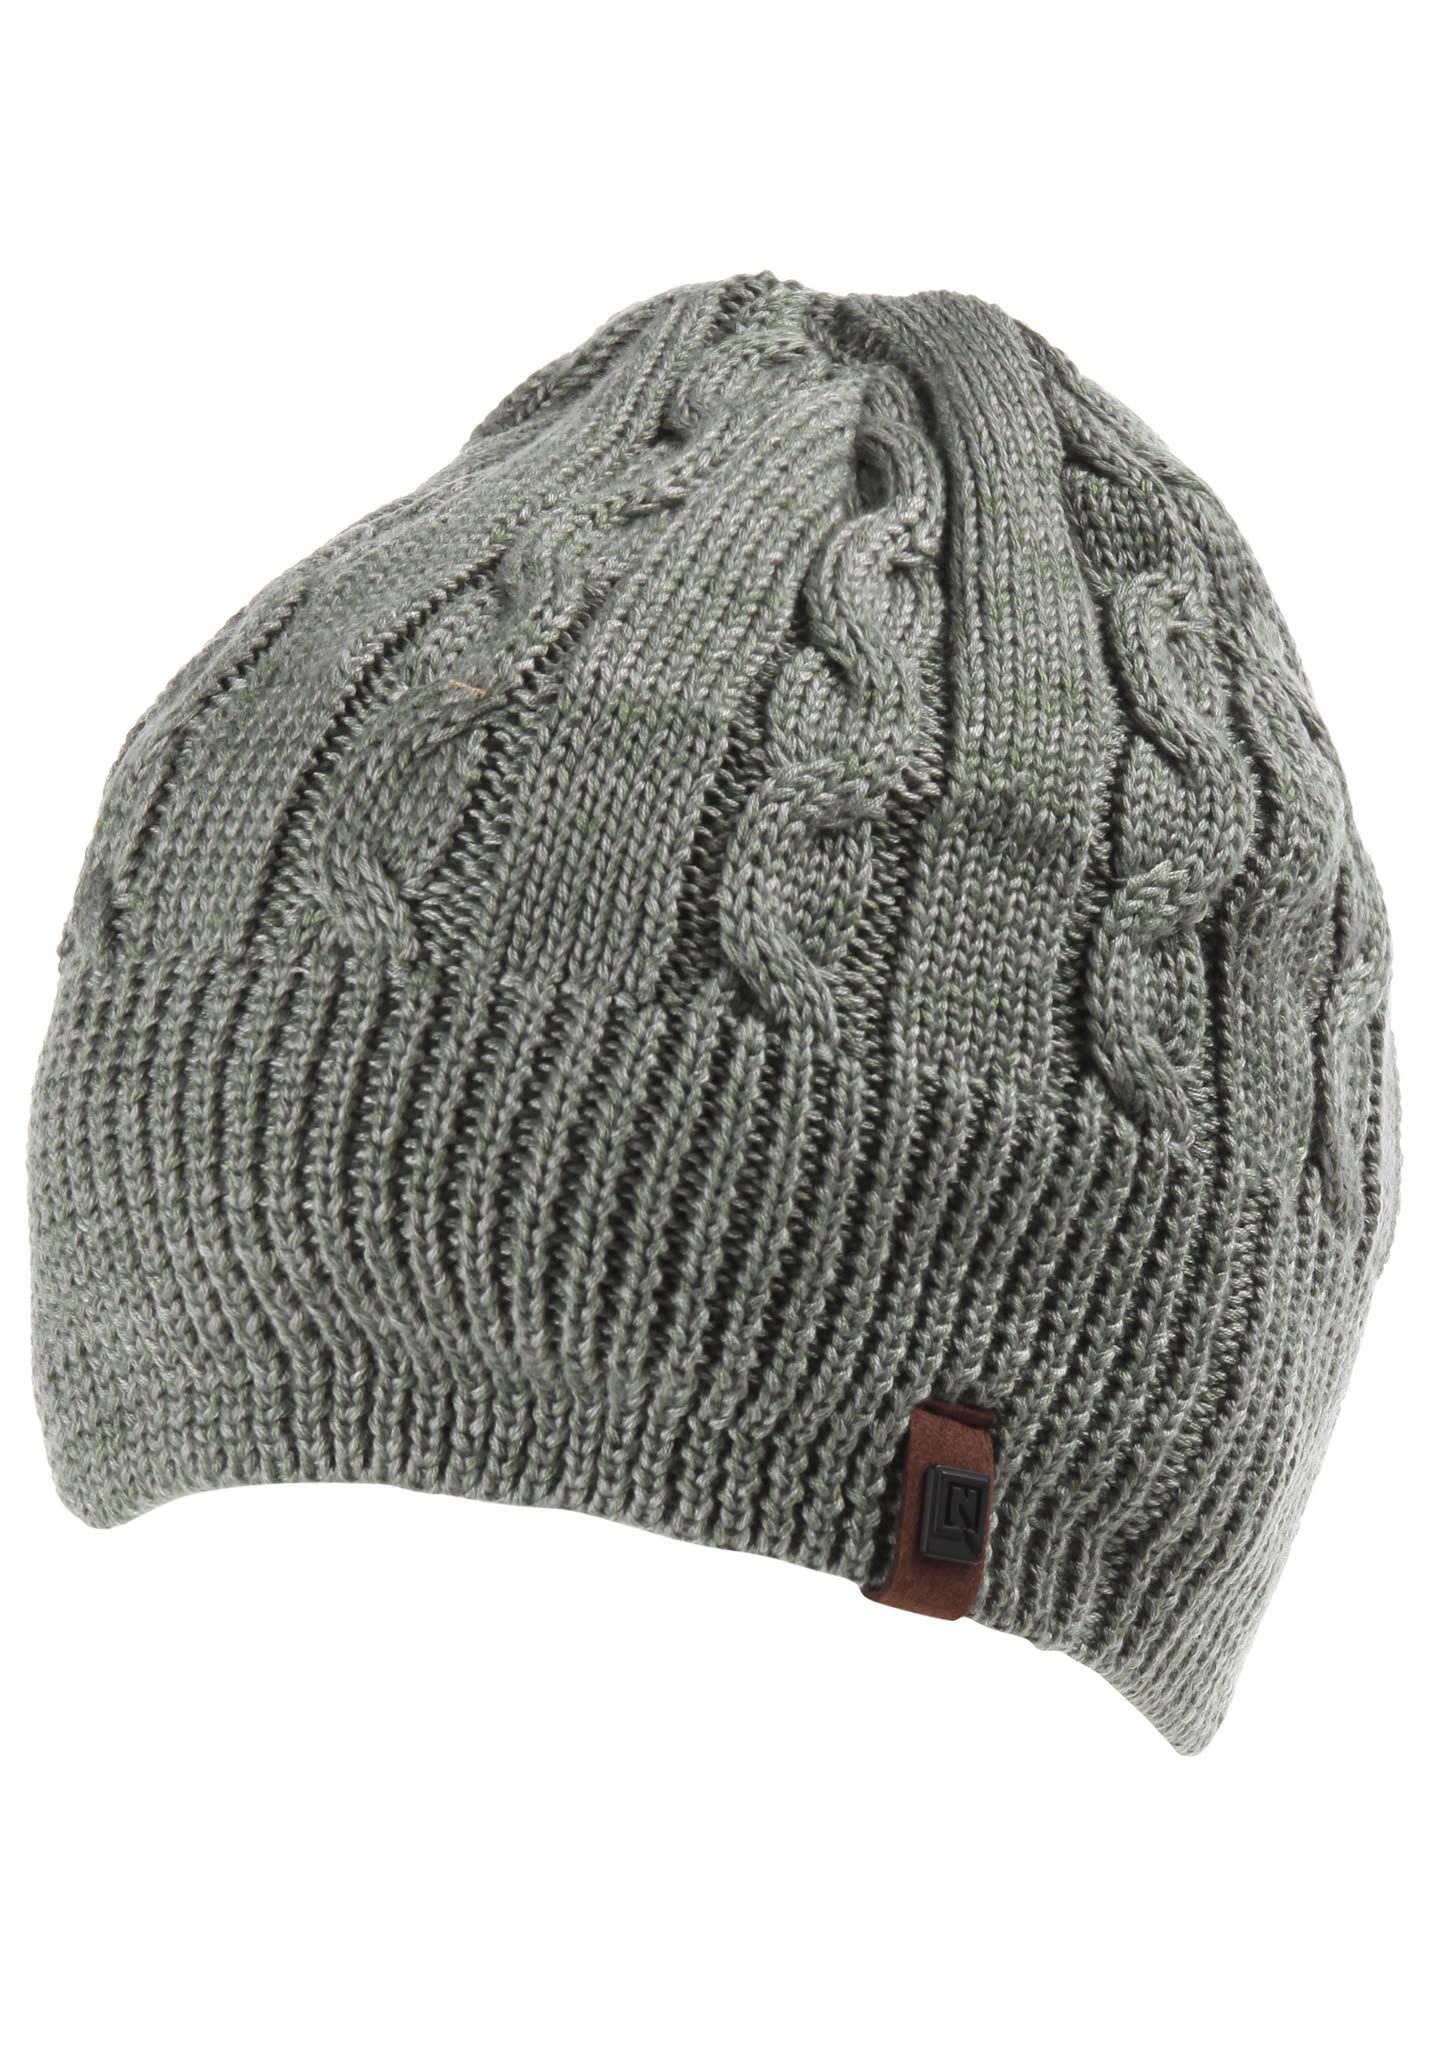 9f747a8d290 NITRO Sierra - Beanie - Grey - Planet Sports